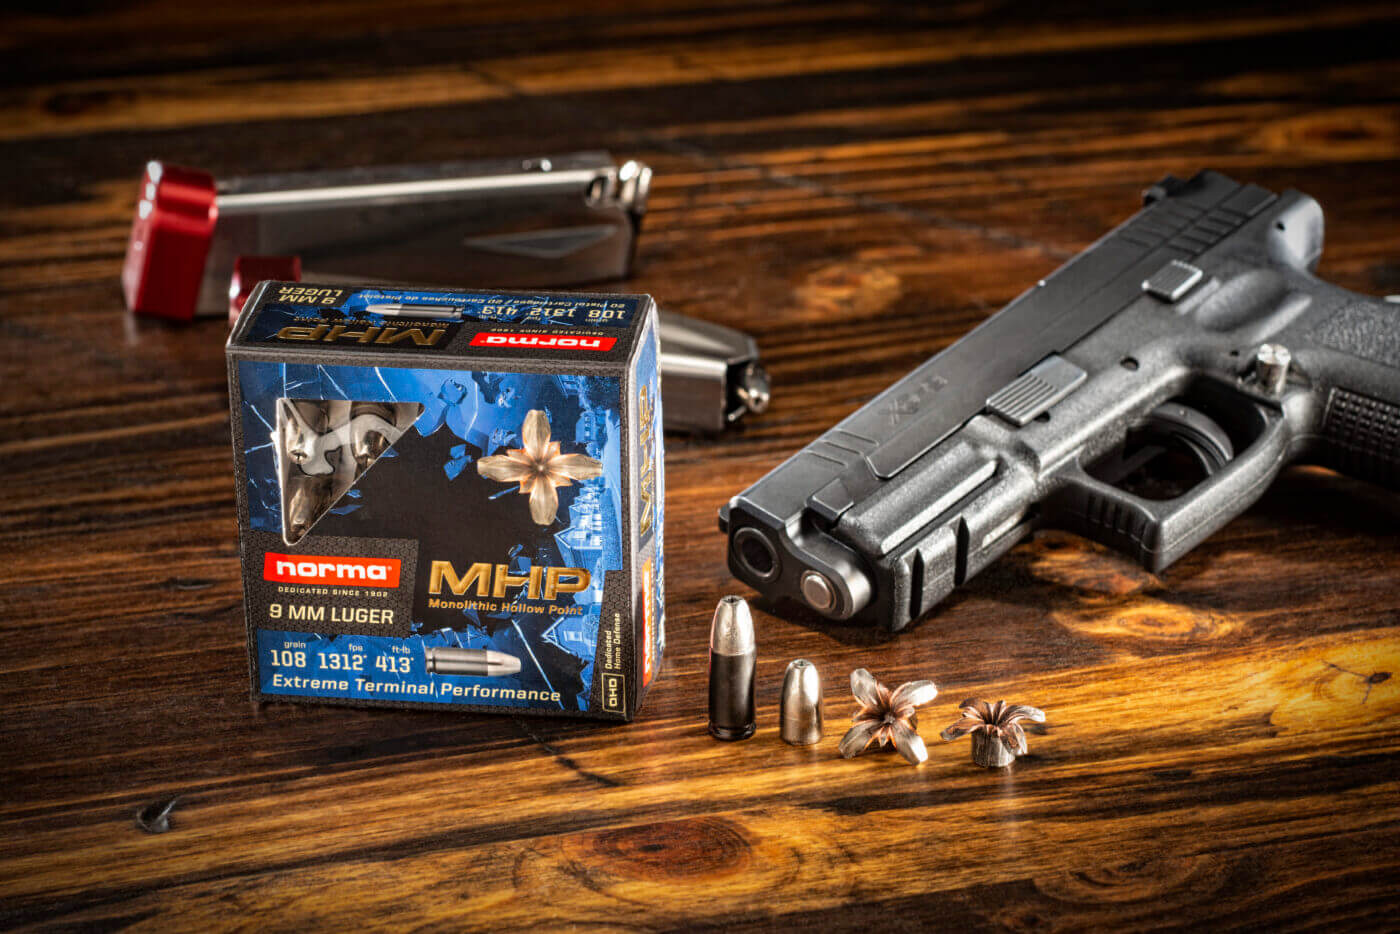 Norma MHP 9mm with Springfield XD duty pistol